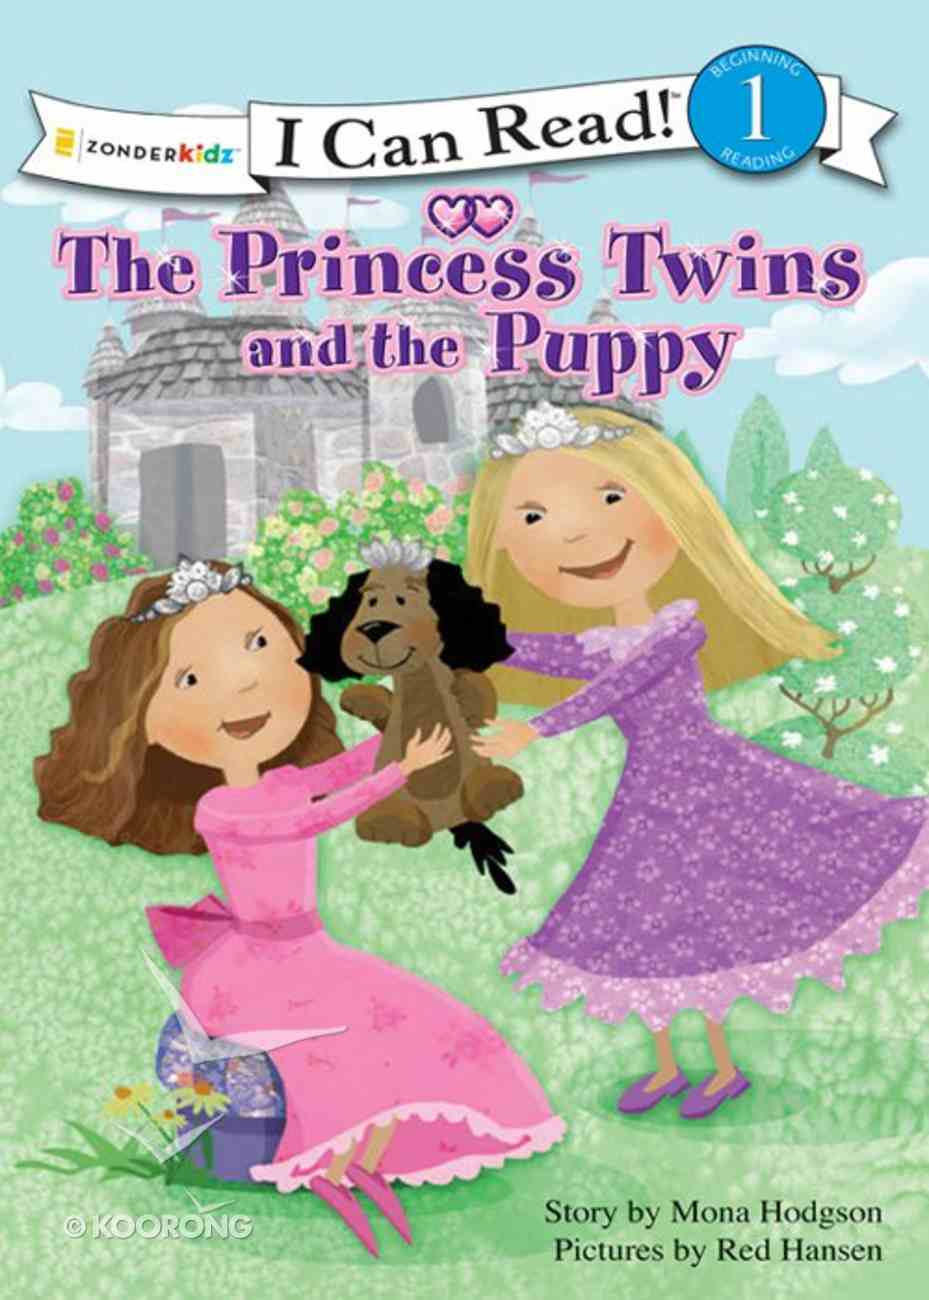 Princess Twins and the Puppy (I Can Read!1/princess Twins Series) eBook